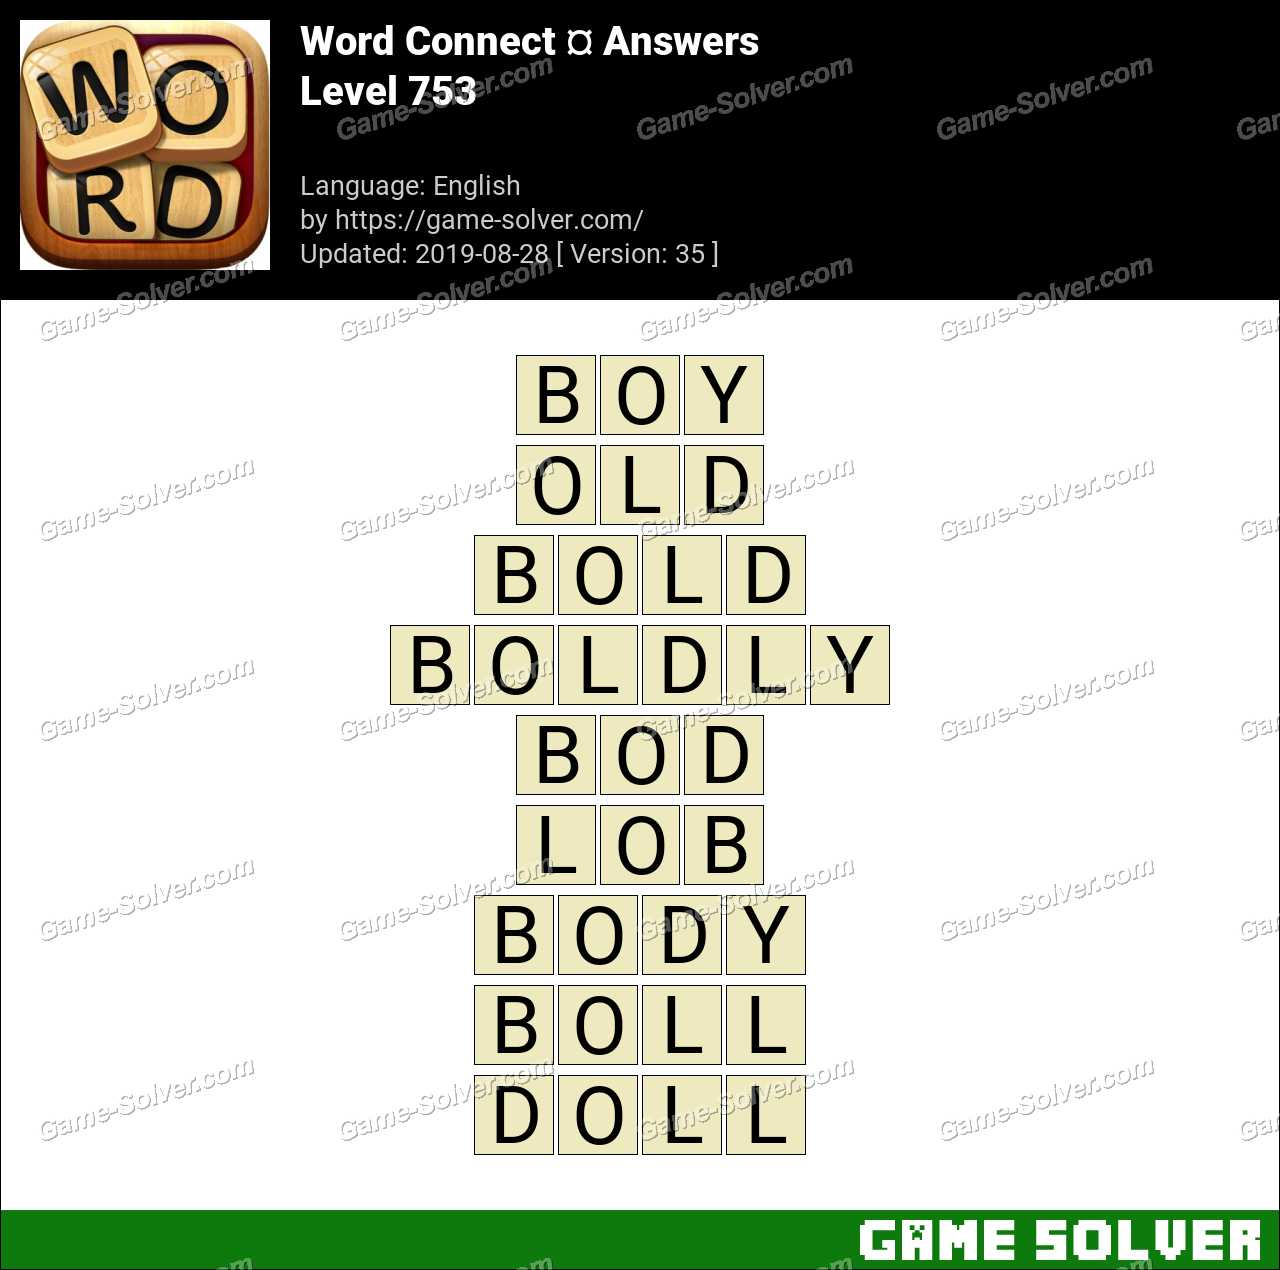 Word Connect Level 753 Answers